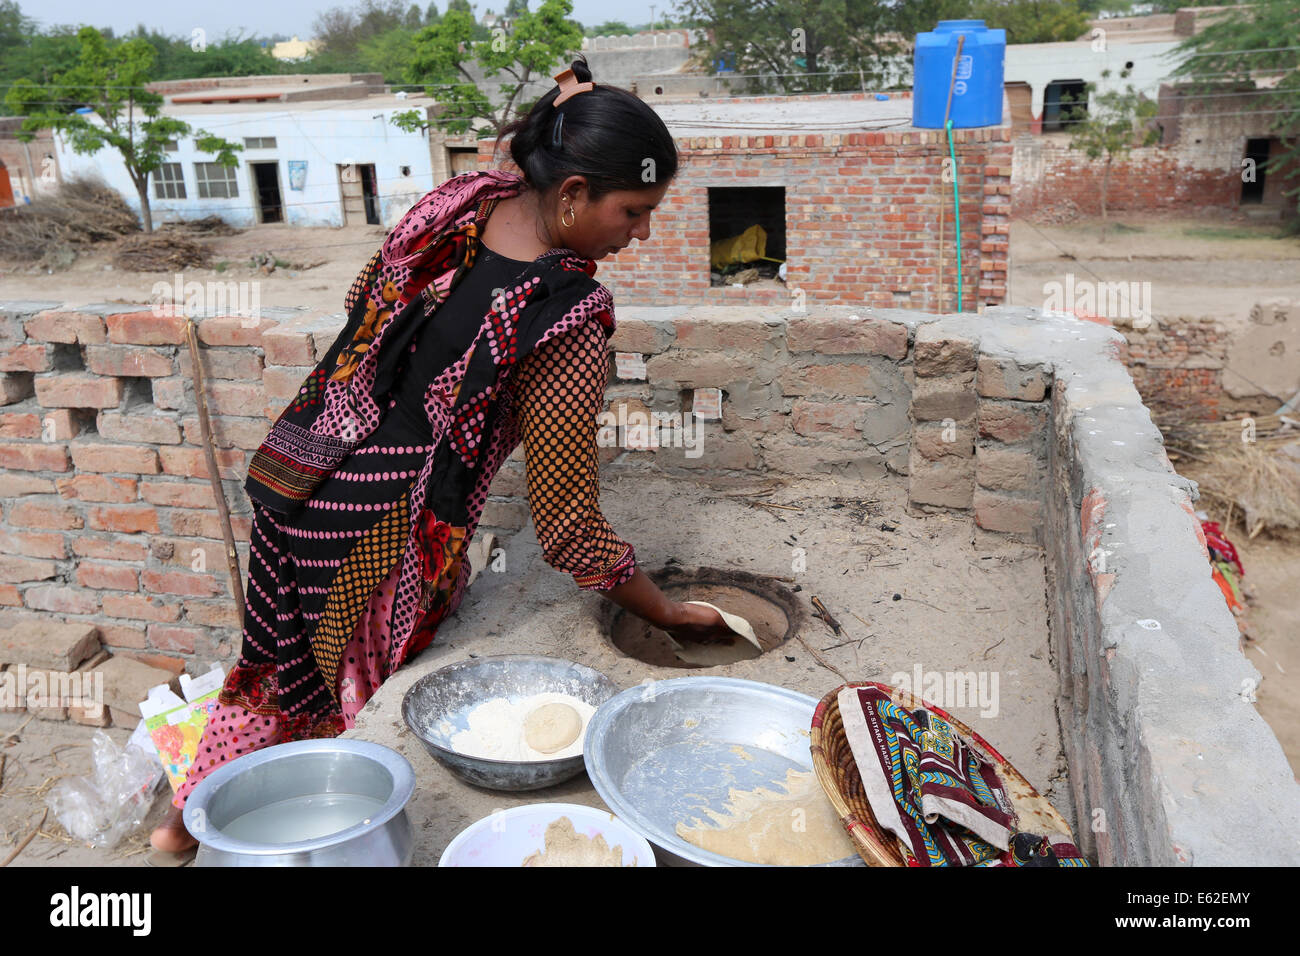 Woman in traditional dress baking roti bread (known as chapati) in a clay oven. Khushpur Village, Punjab Province, - Stock Image